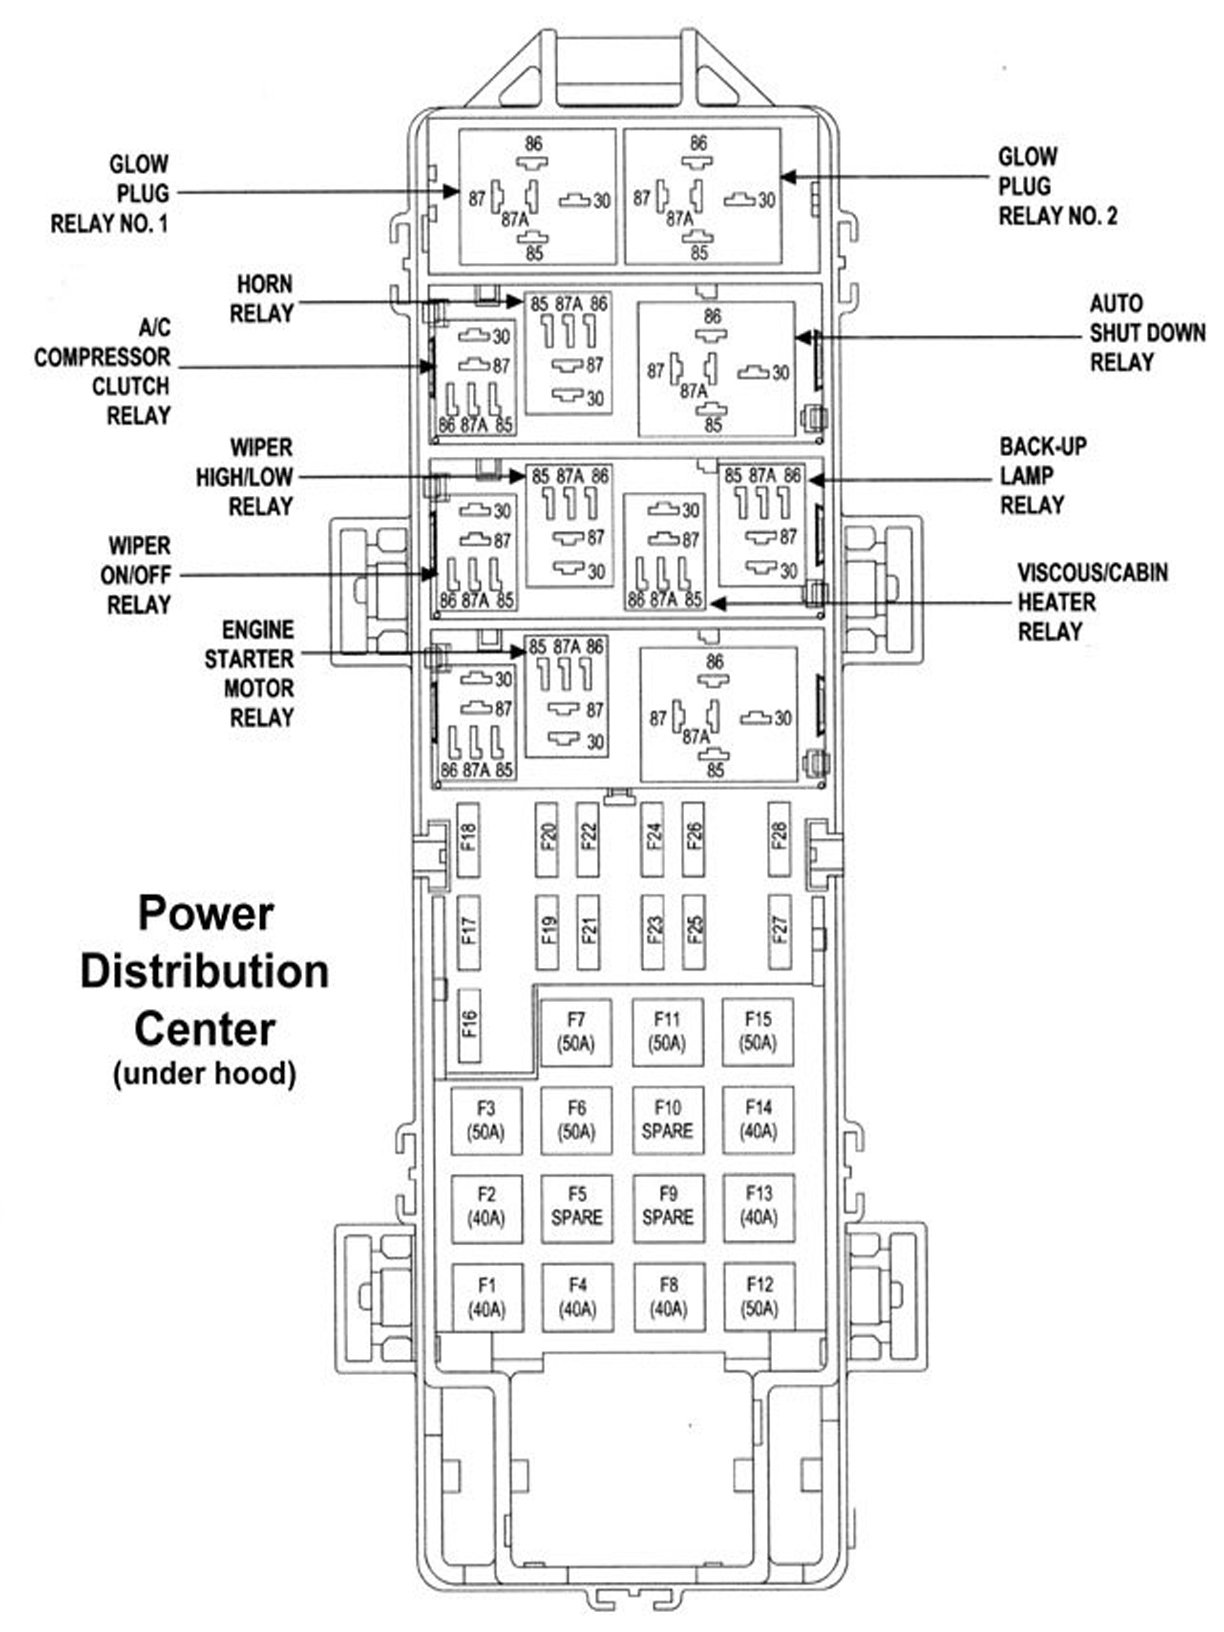 DIAGRAM] 2005 Jeep Cherokee Fuse Diagram FULL Version HD Quality Fuse  Diagram - EASYSOLARPANELDIAGRAM.BELLEILMERSION.FReasysolarpaneldiagram.belleilmersion.fr